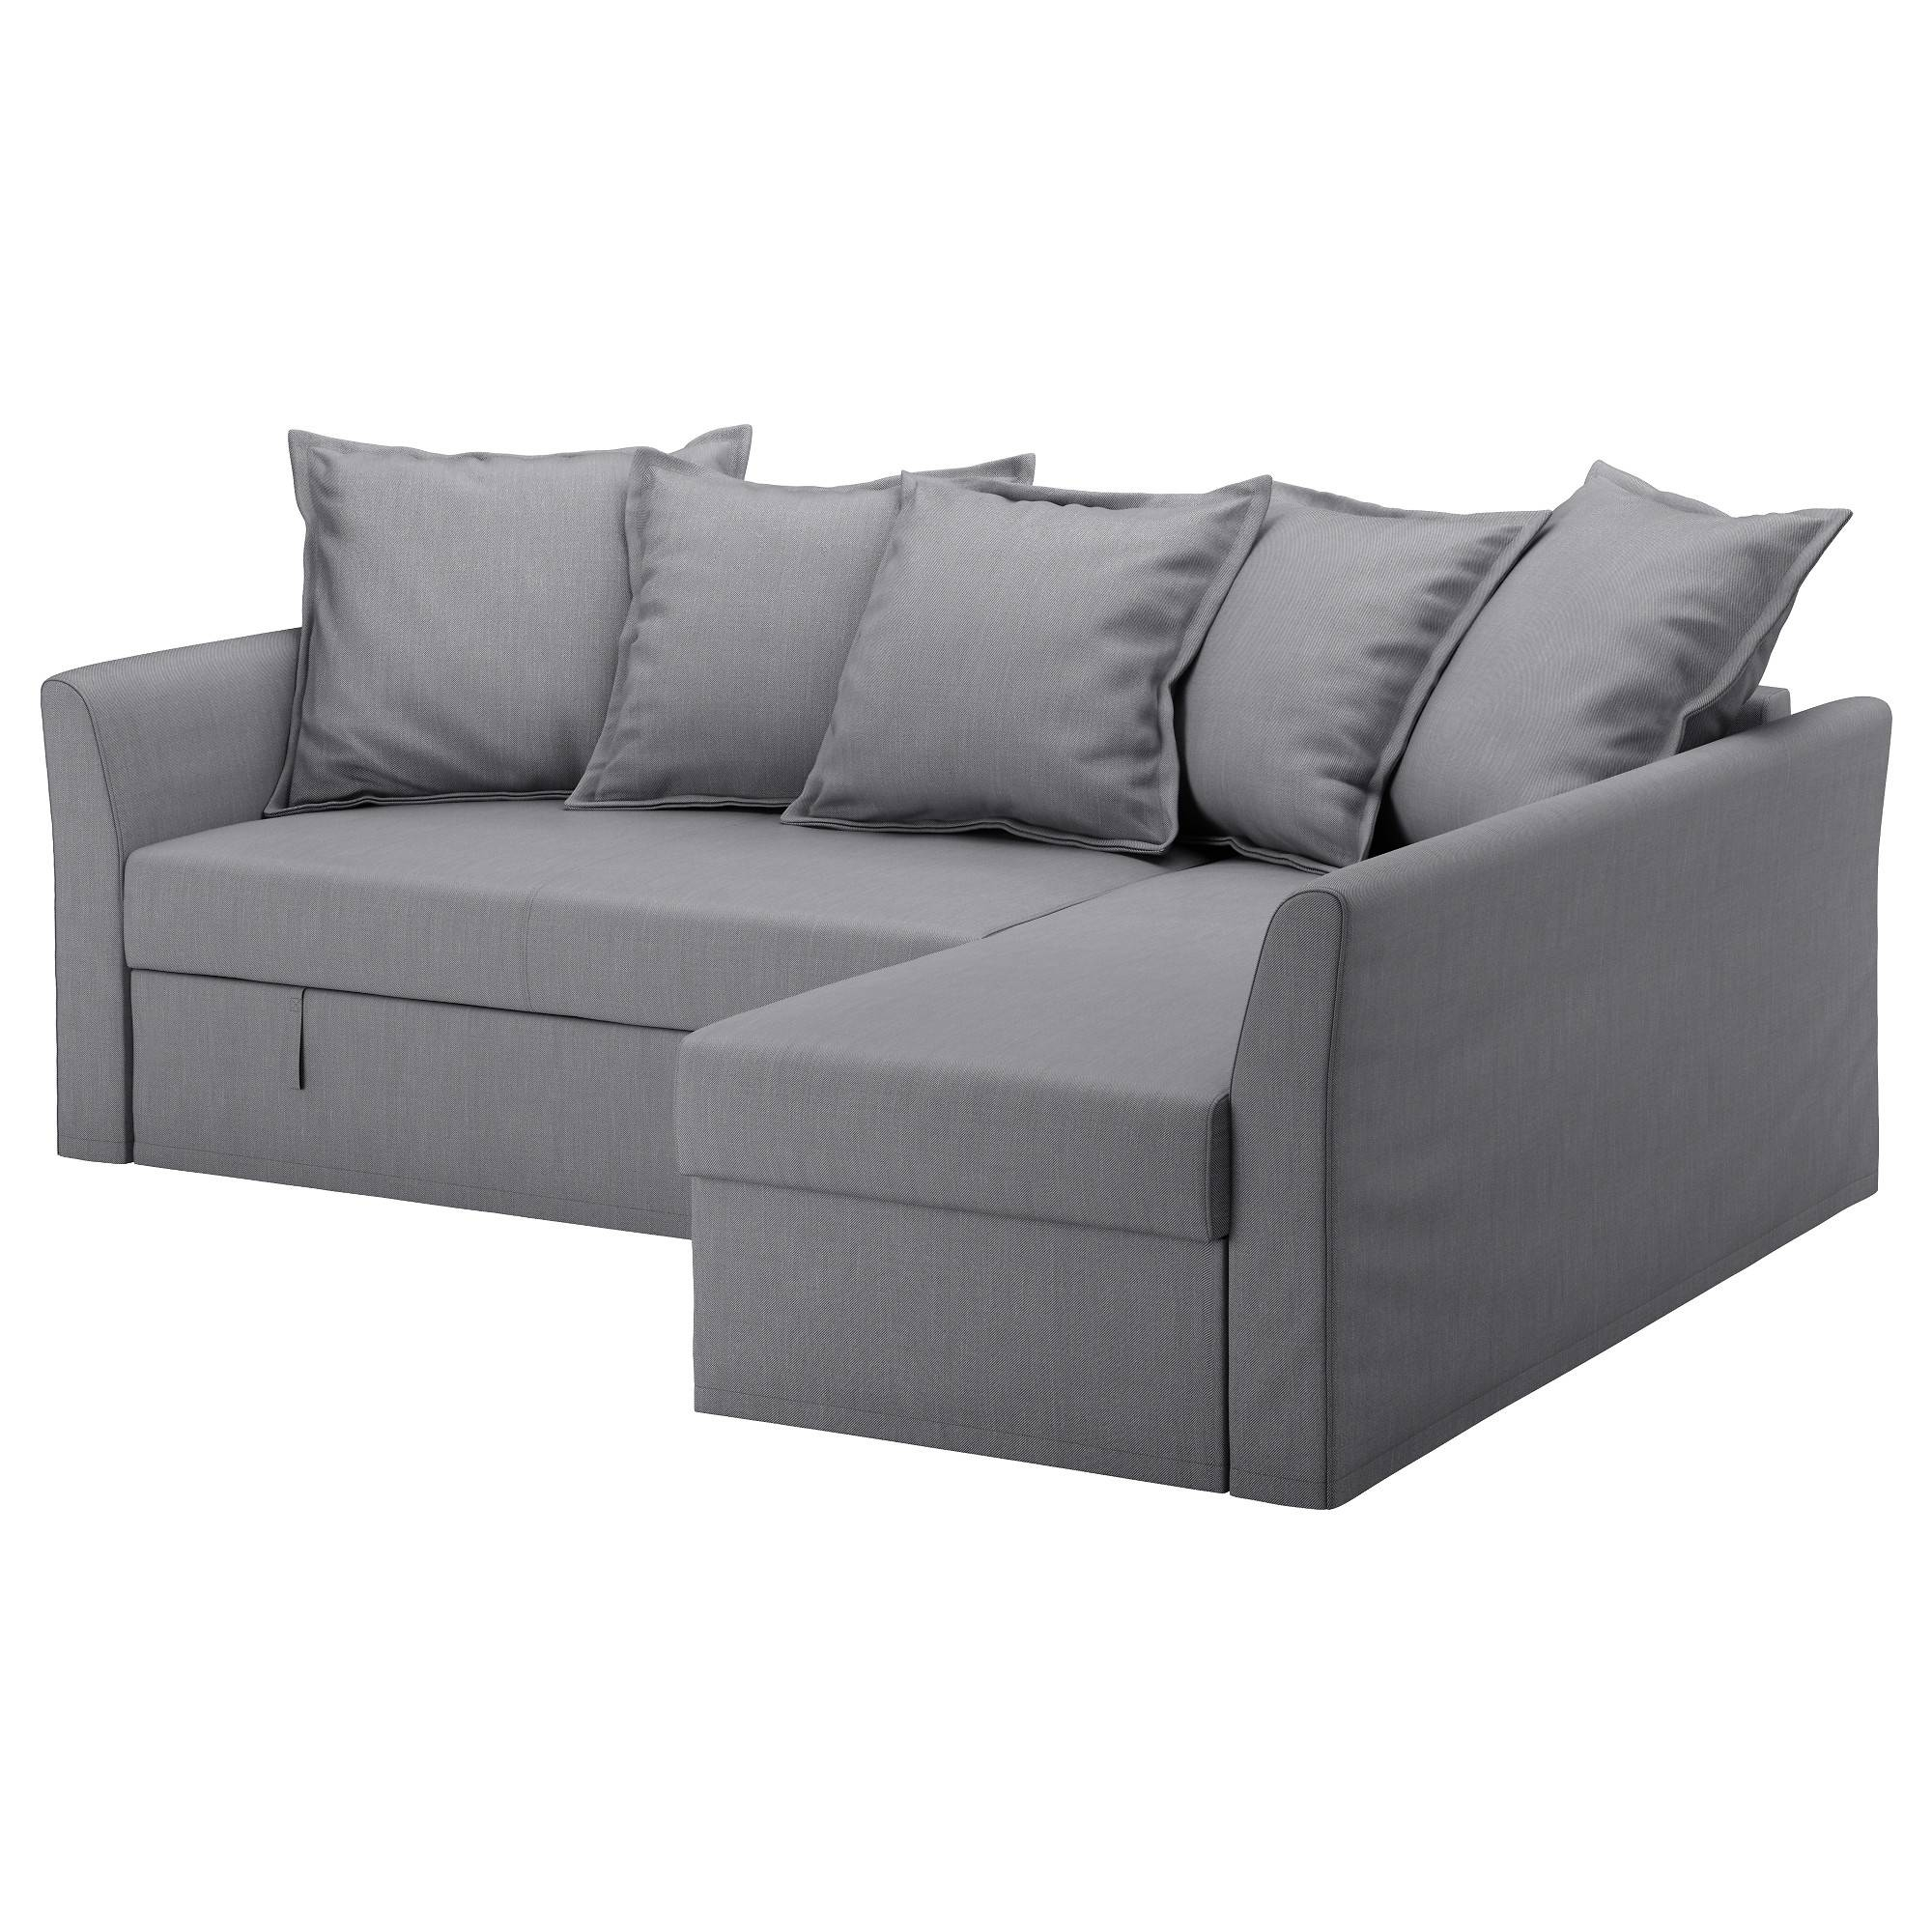 Ikea Sleeper Sofa With Chaise - Ansugallery regarding Sleeper Sofa Sectional Ikea (Image 12 of 25)